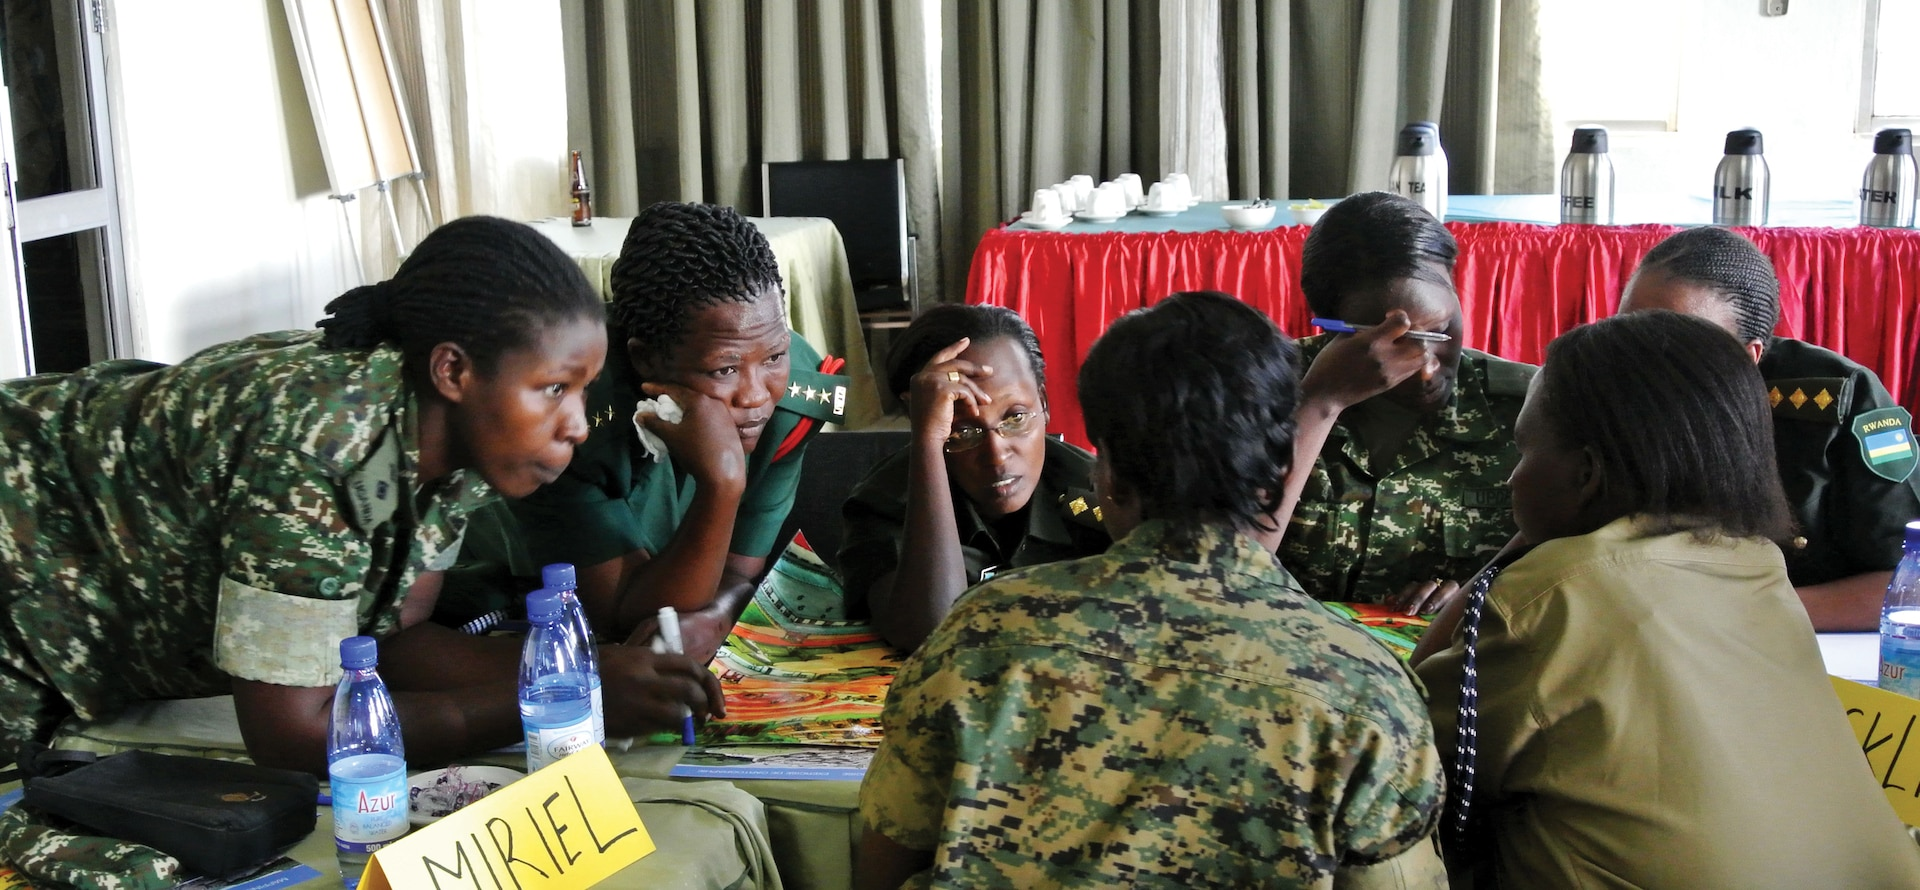 Women from the Uganda People's Defense Force (UPDF) work on a village mapping exercise in Kampala during Dallaire Initiative's Women and Security Sector training. The village mapping exercise teaches